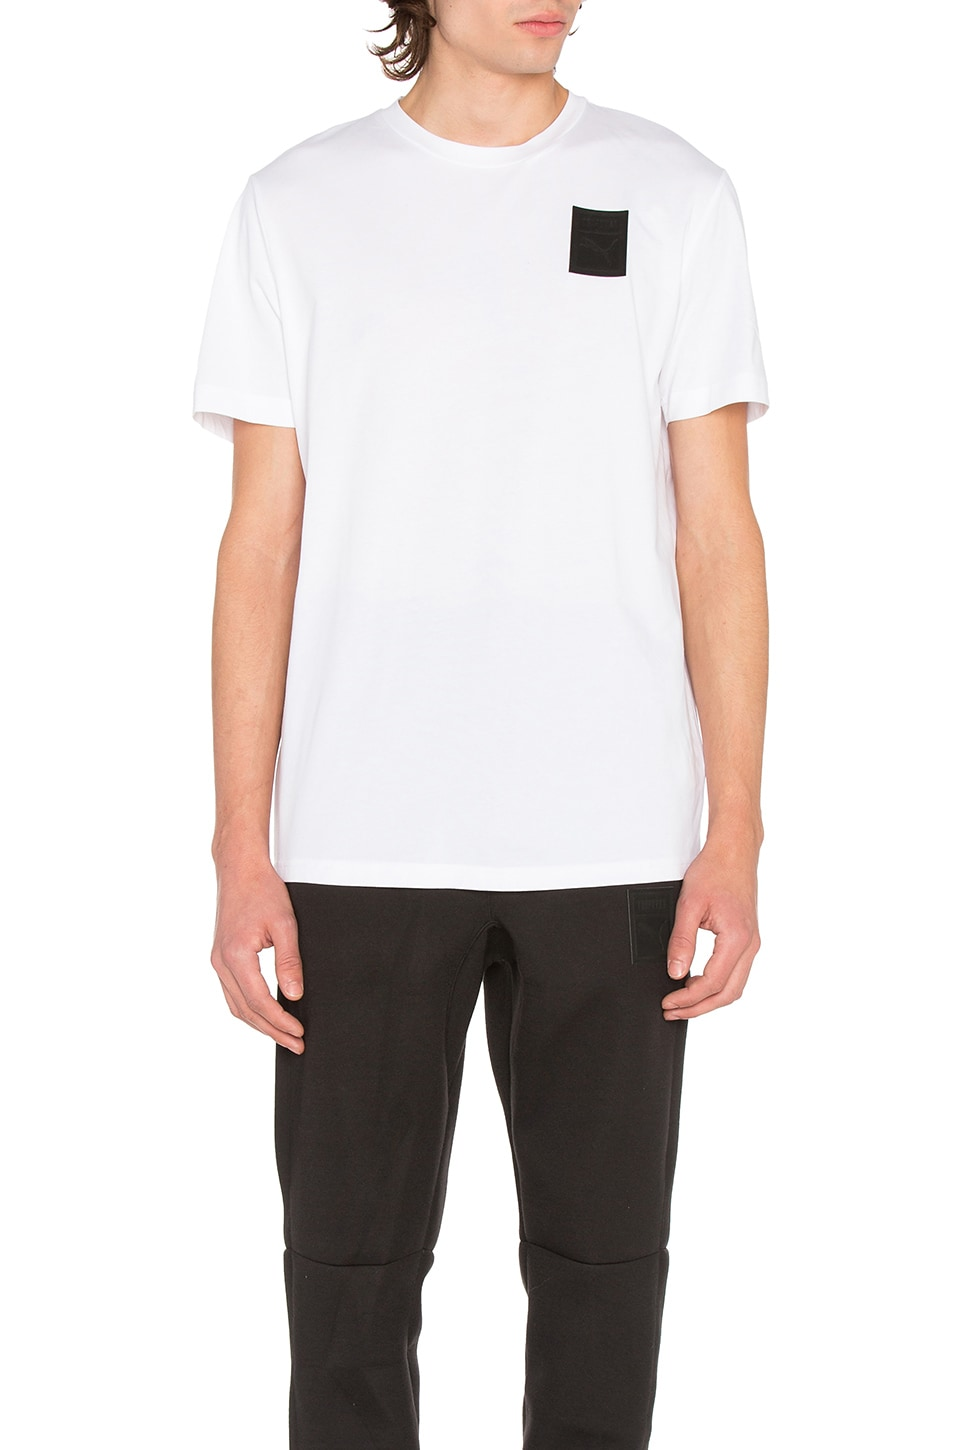 x Trapstar Logo Tee by Puma Select